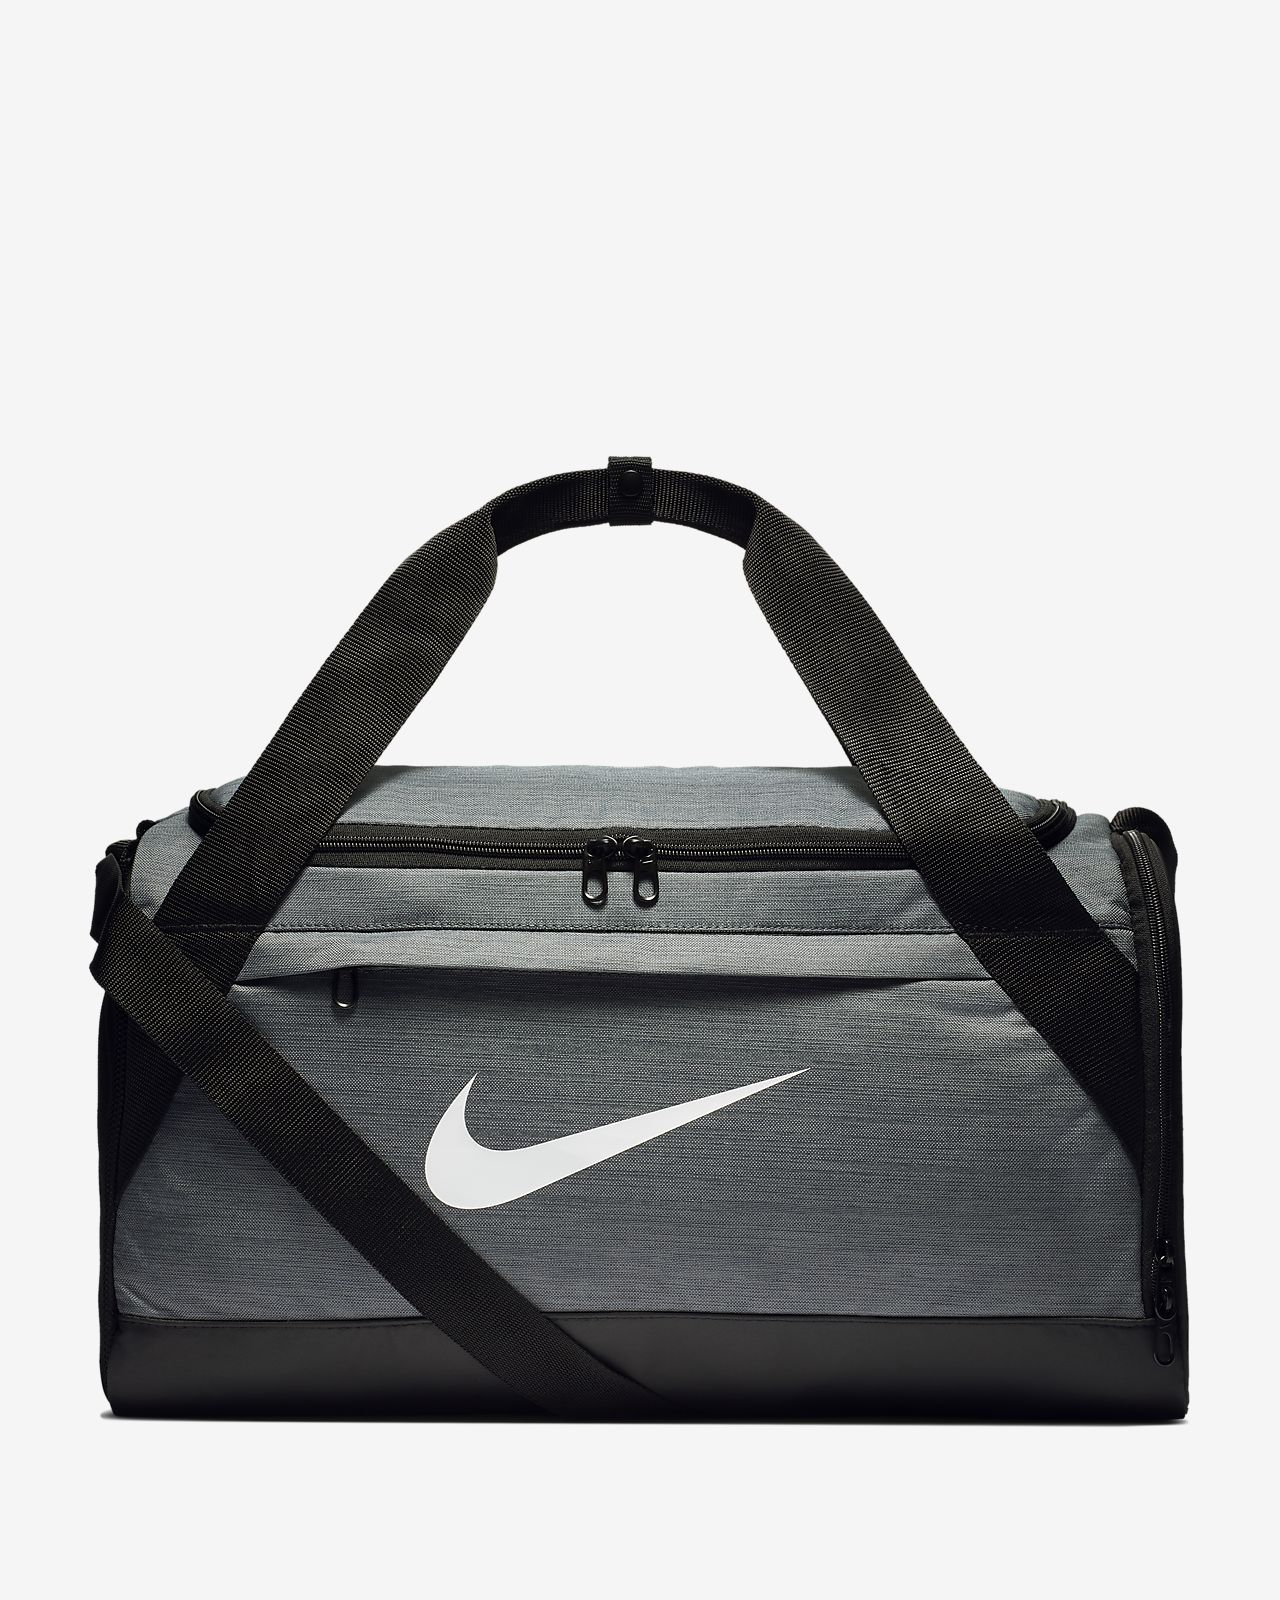 9f8ec9b16c42 Nike Brasilia Training Duffel Bag (Small). Nike.com